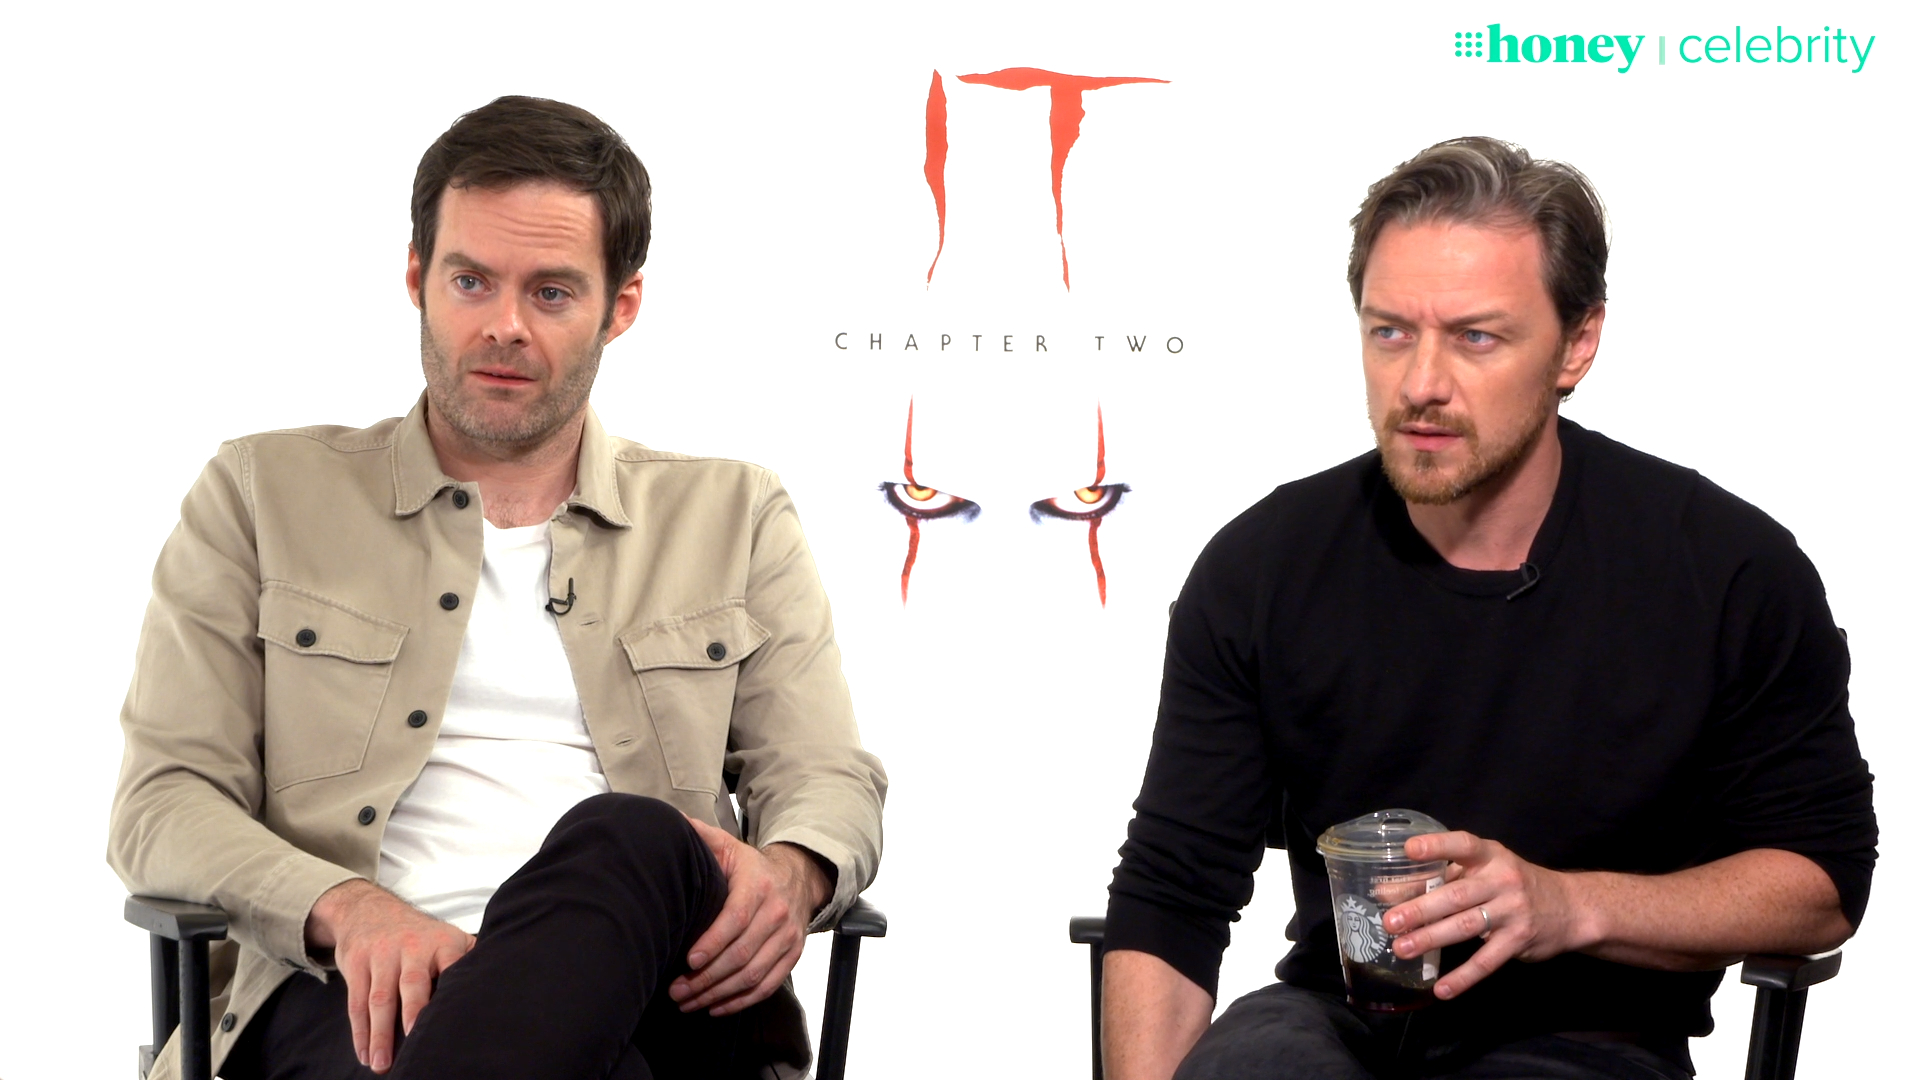 Bill Hader pulled groin muscles while filming It Chapter Two